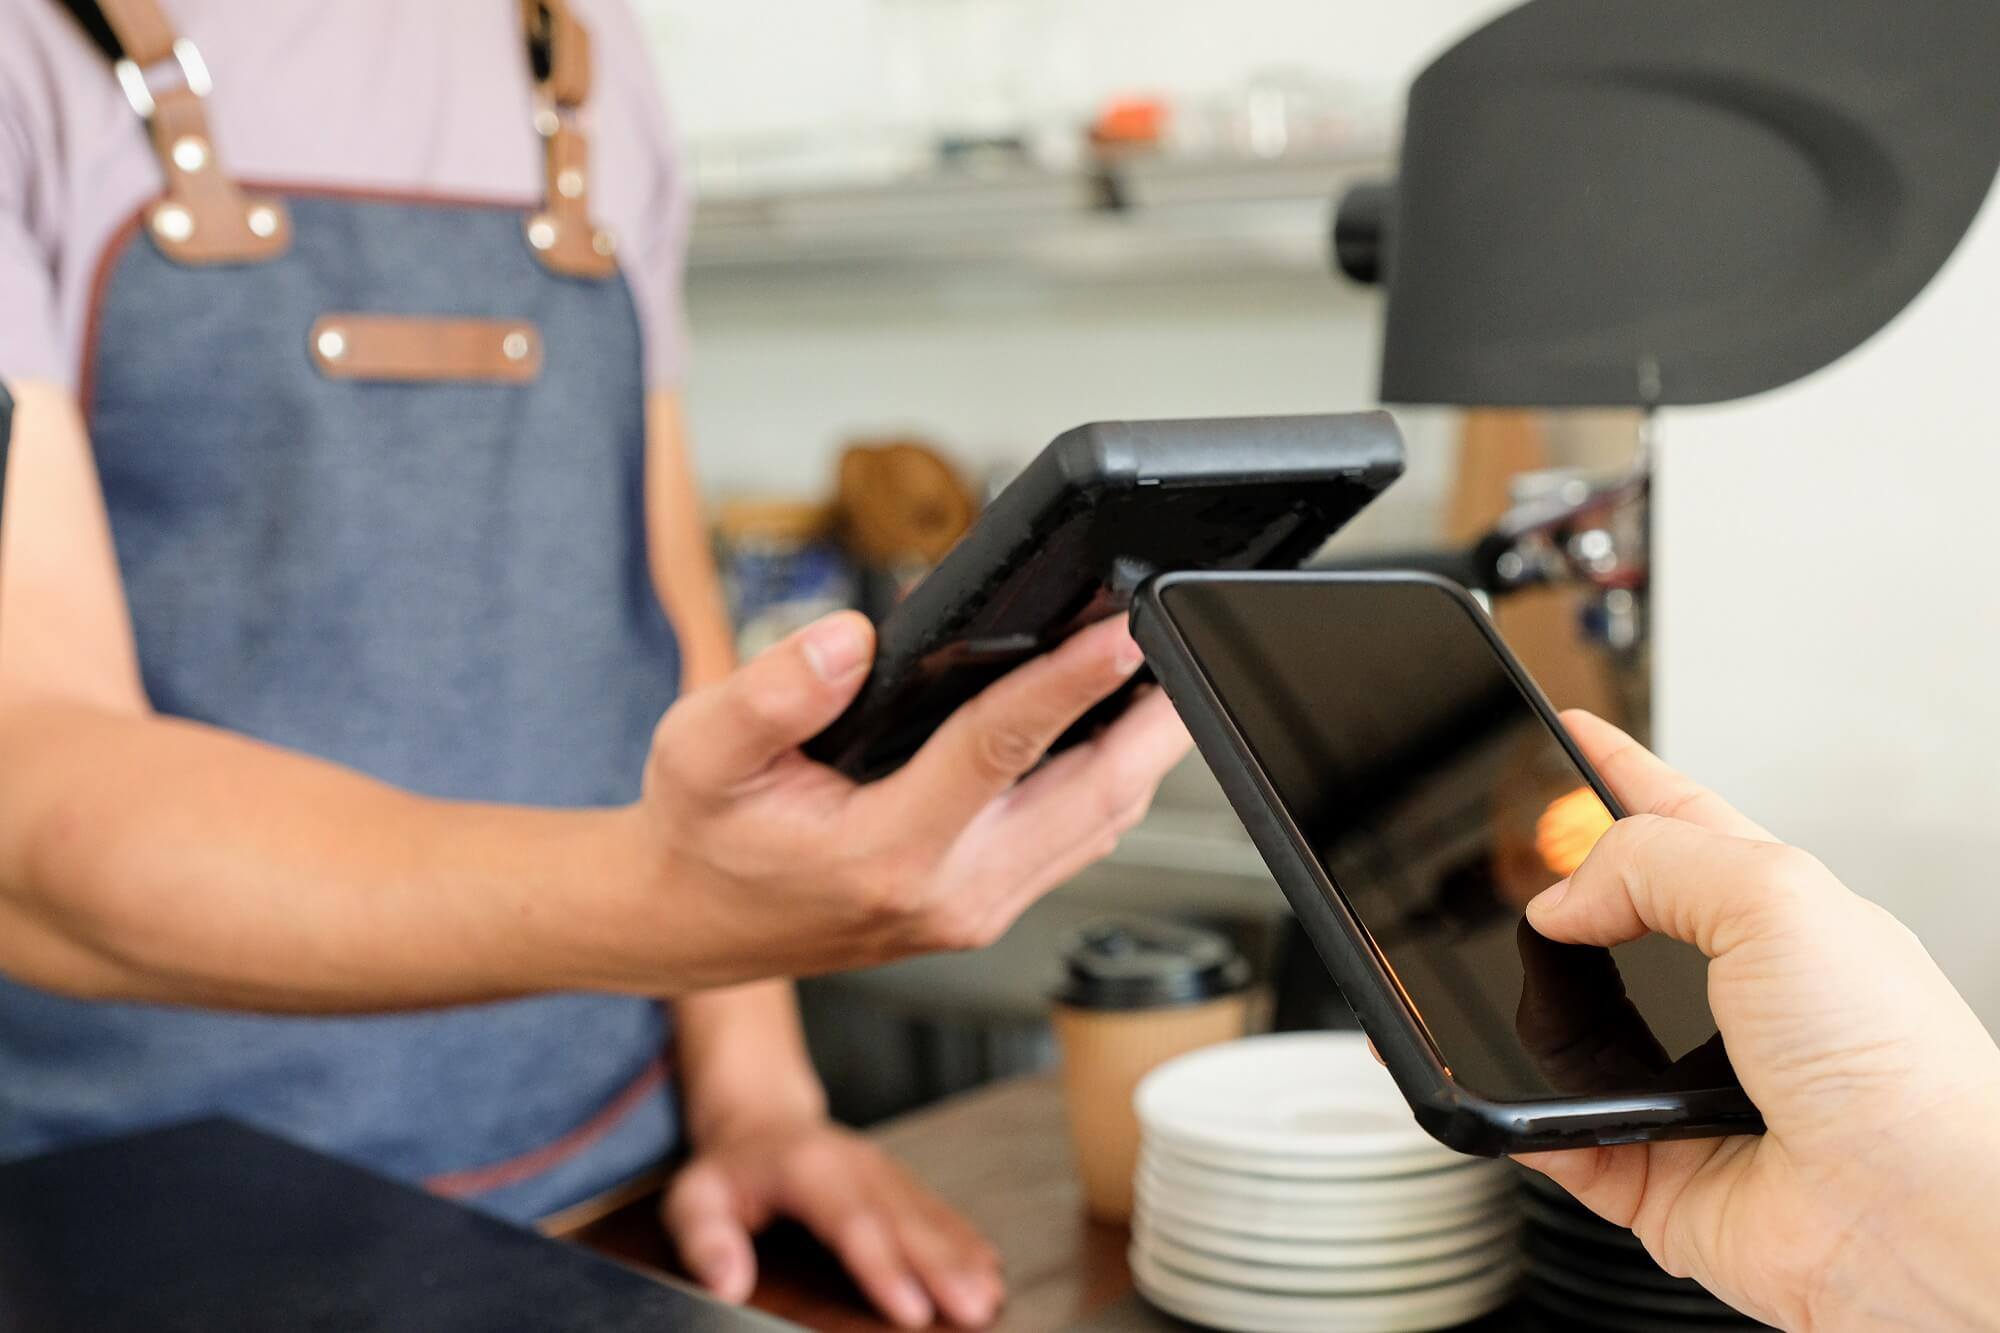 Customer and business owner are holding a smartphone to pay via the App.